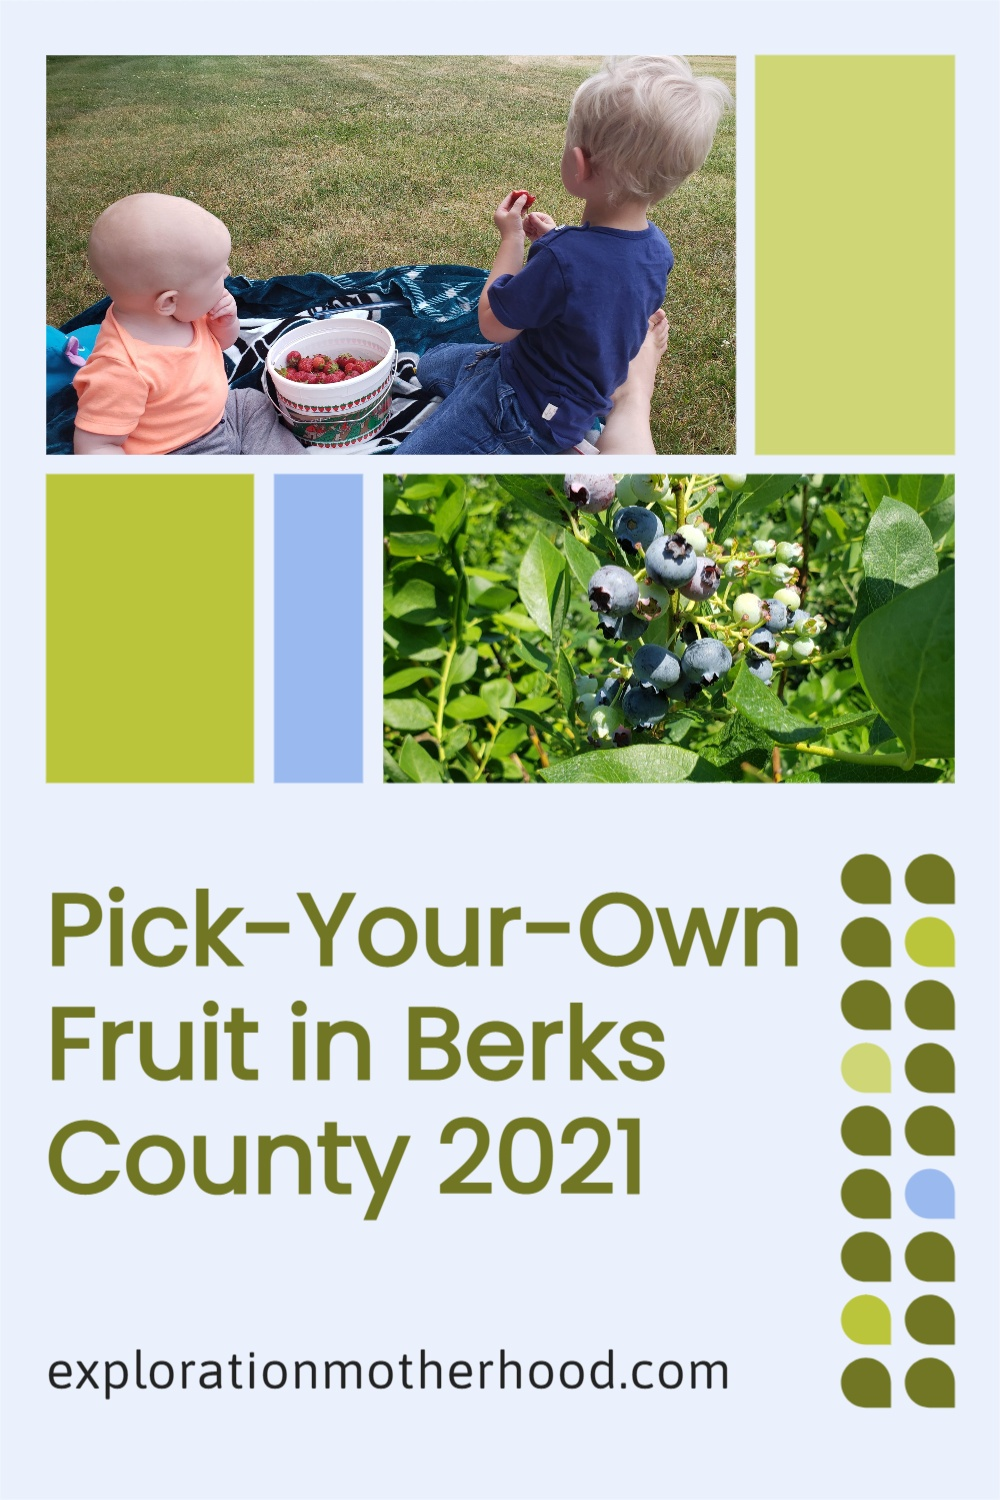 Pick-Your-Own Fruit in Berks County 2021